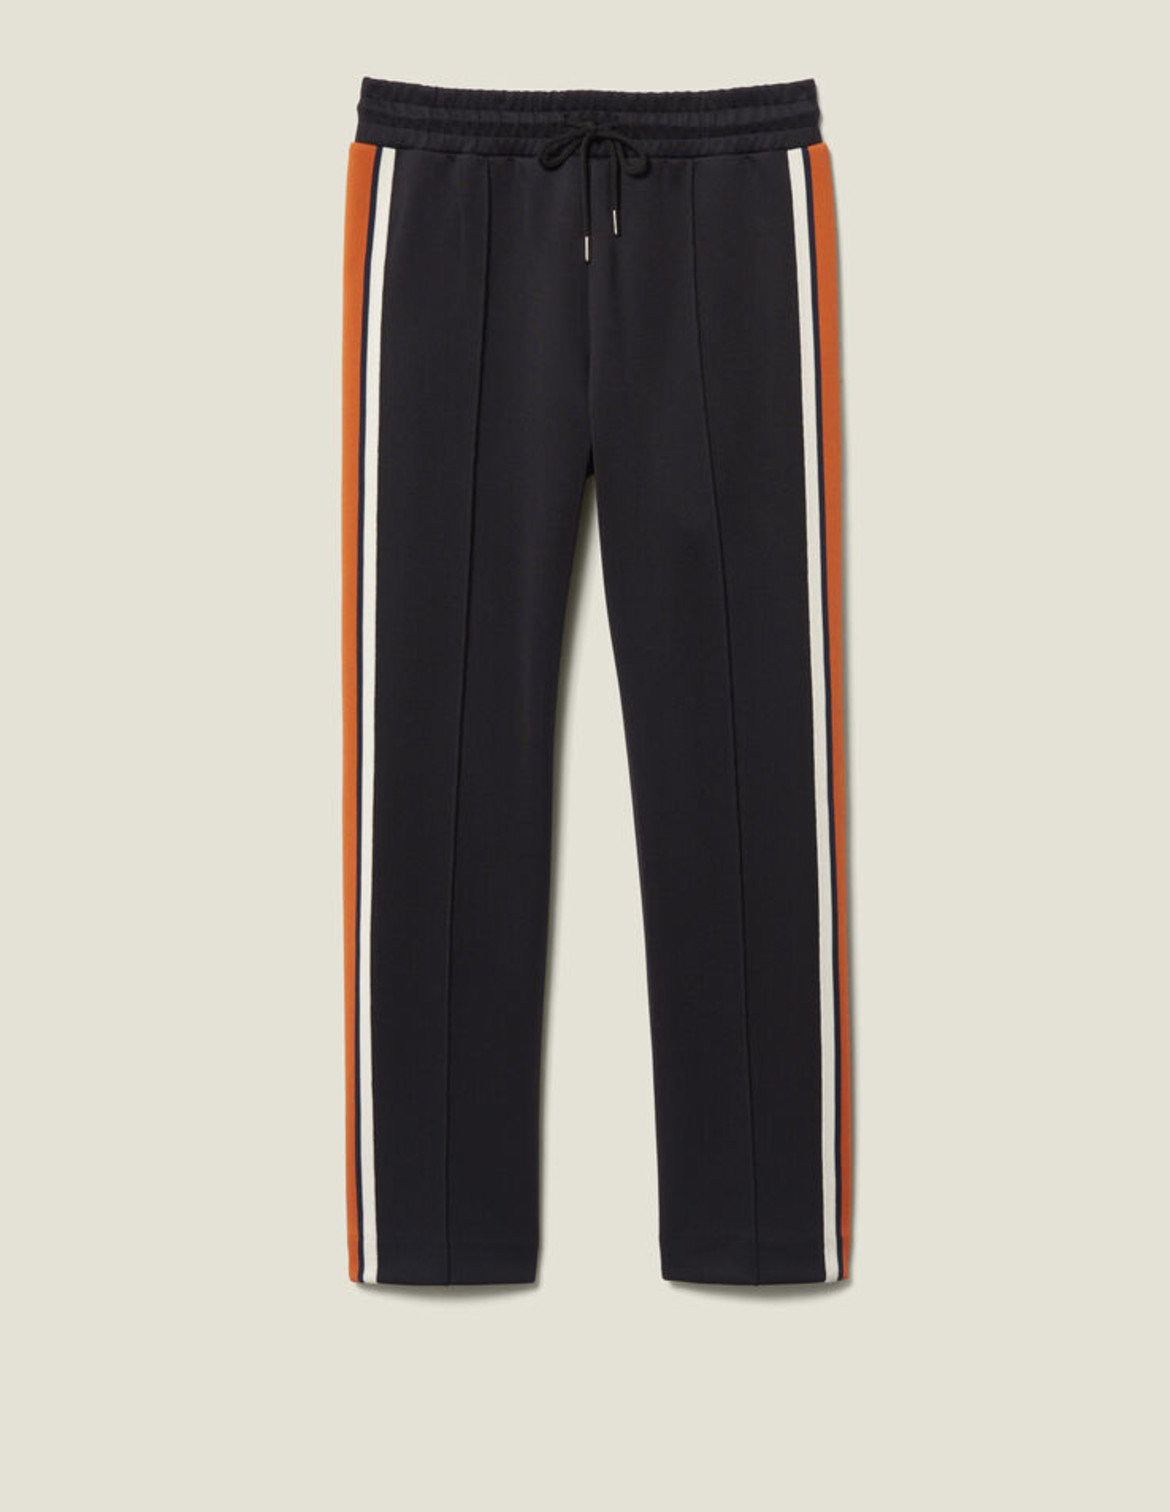 Sandro jersey jogging bottoms with stripes, was HK$2,190, now HK$1,095 (www.sandro-paris.com.hk)